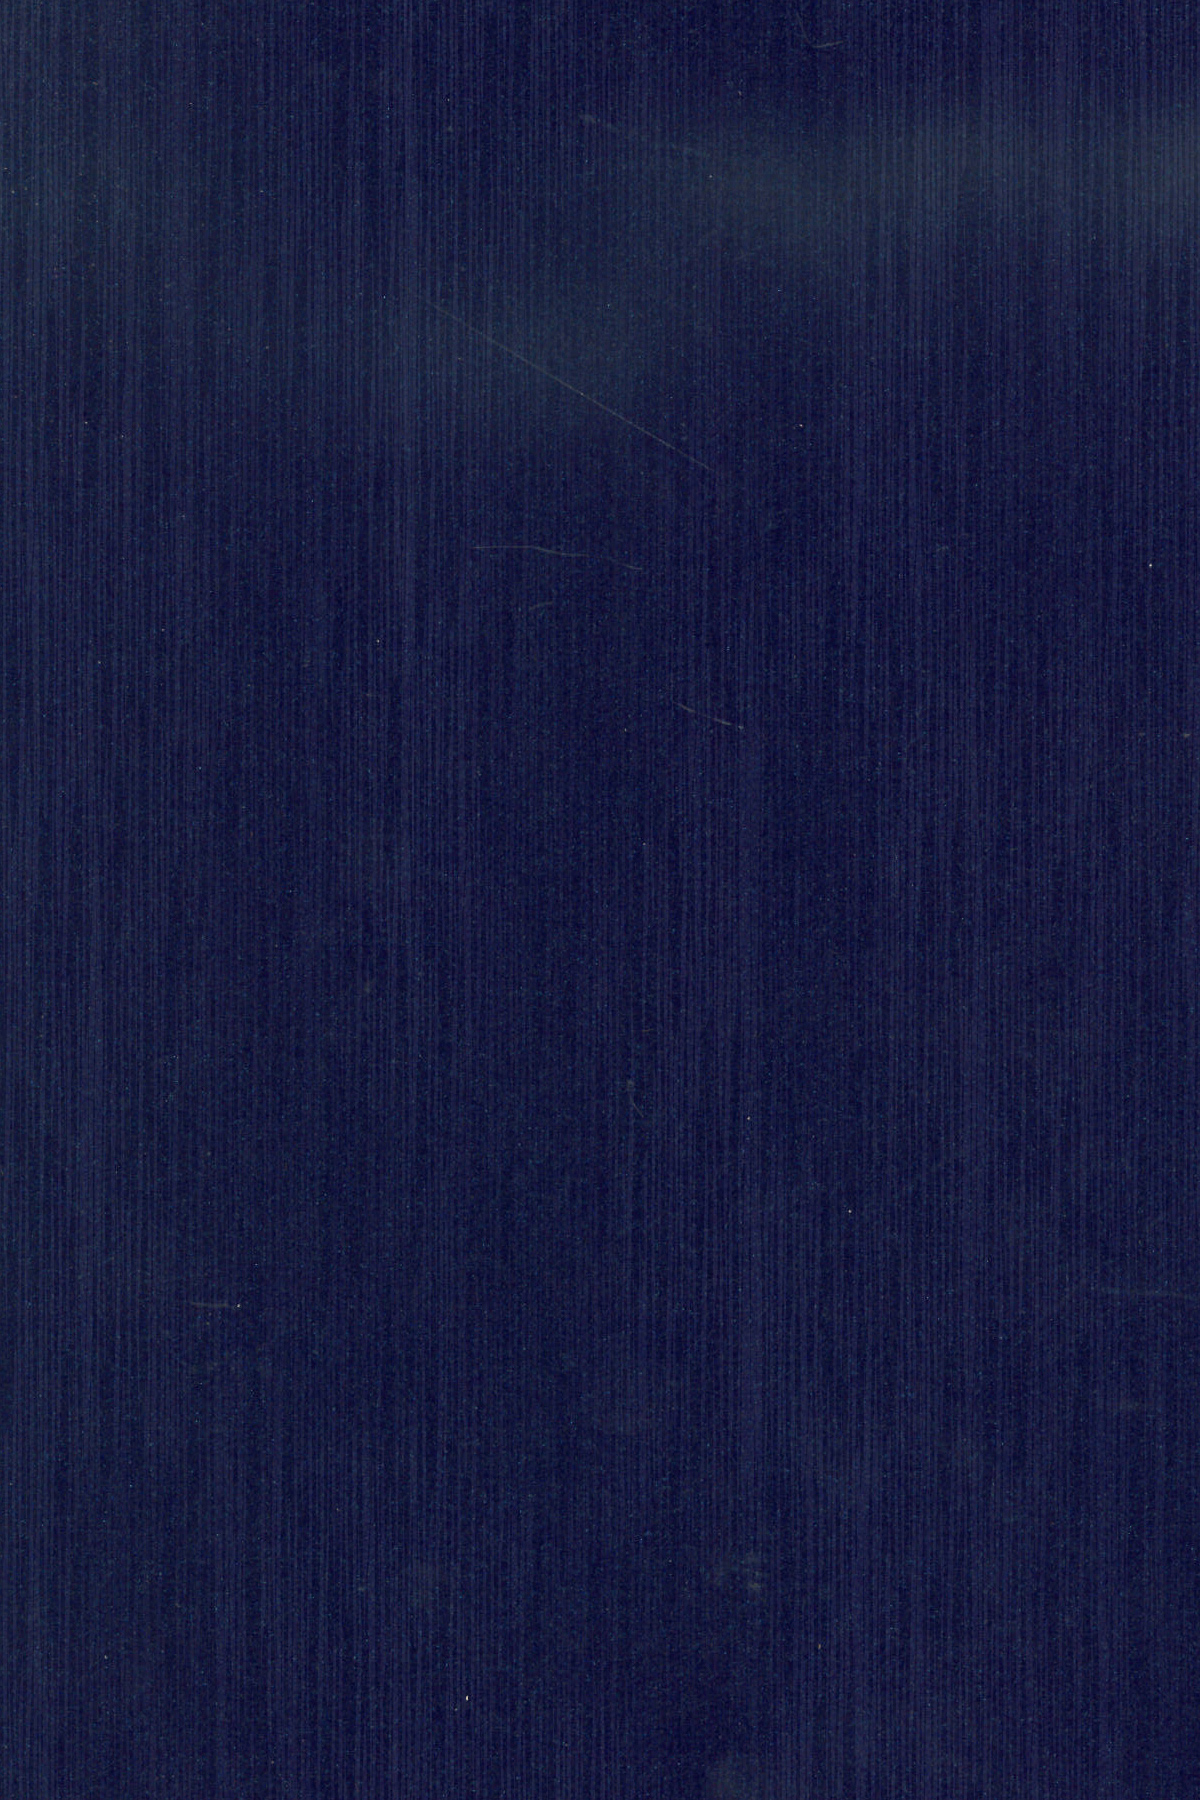 ORACAL 975 60X10yd 192 Brushed Deep Blue